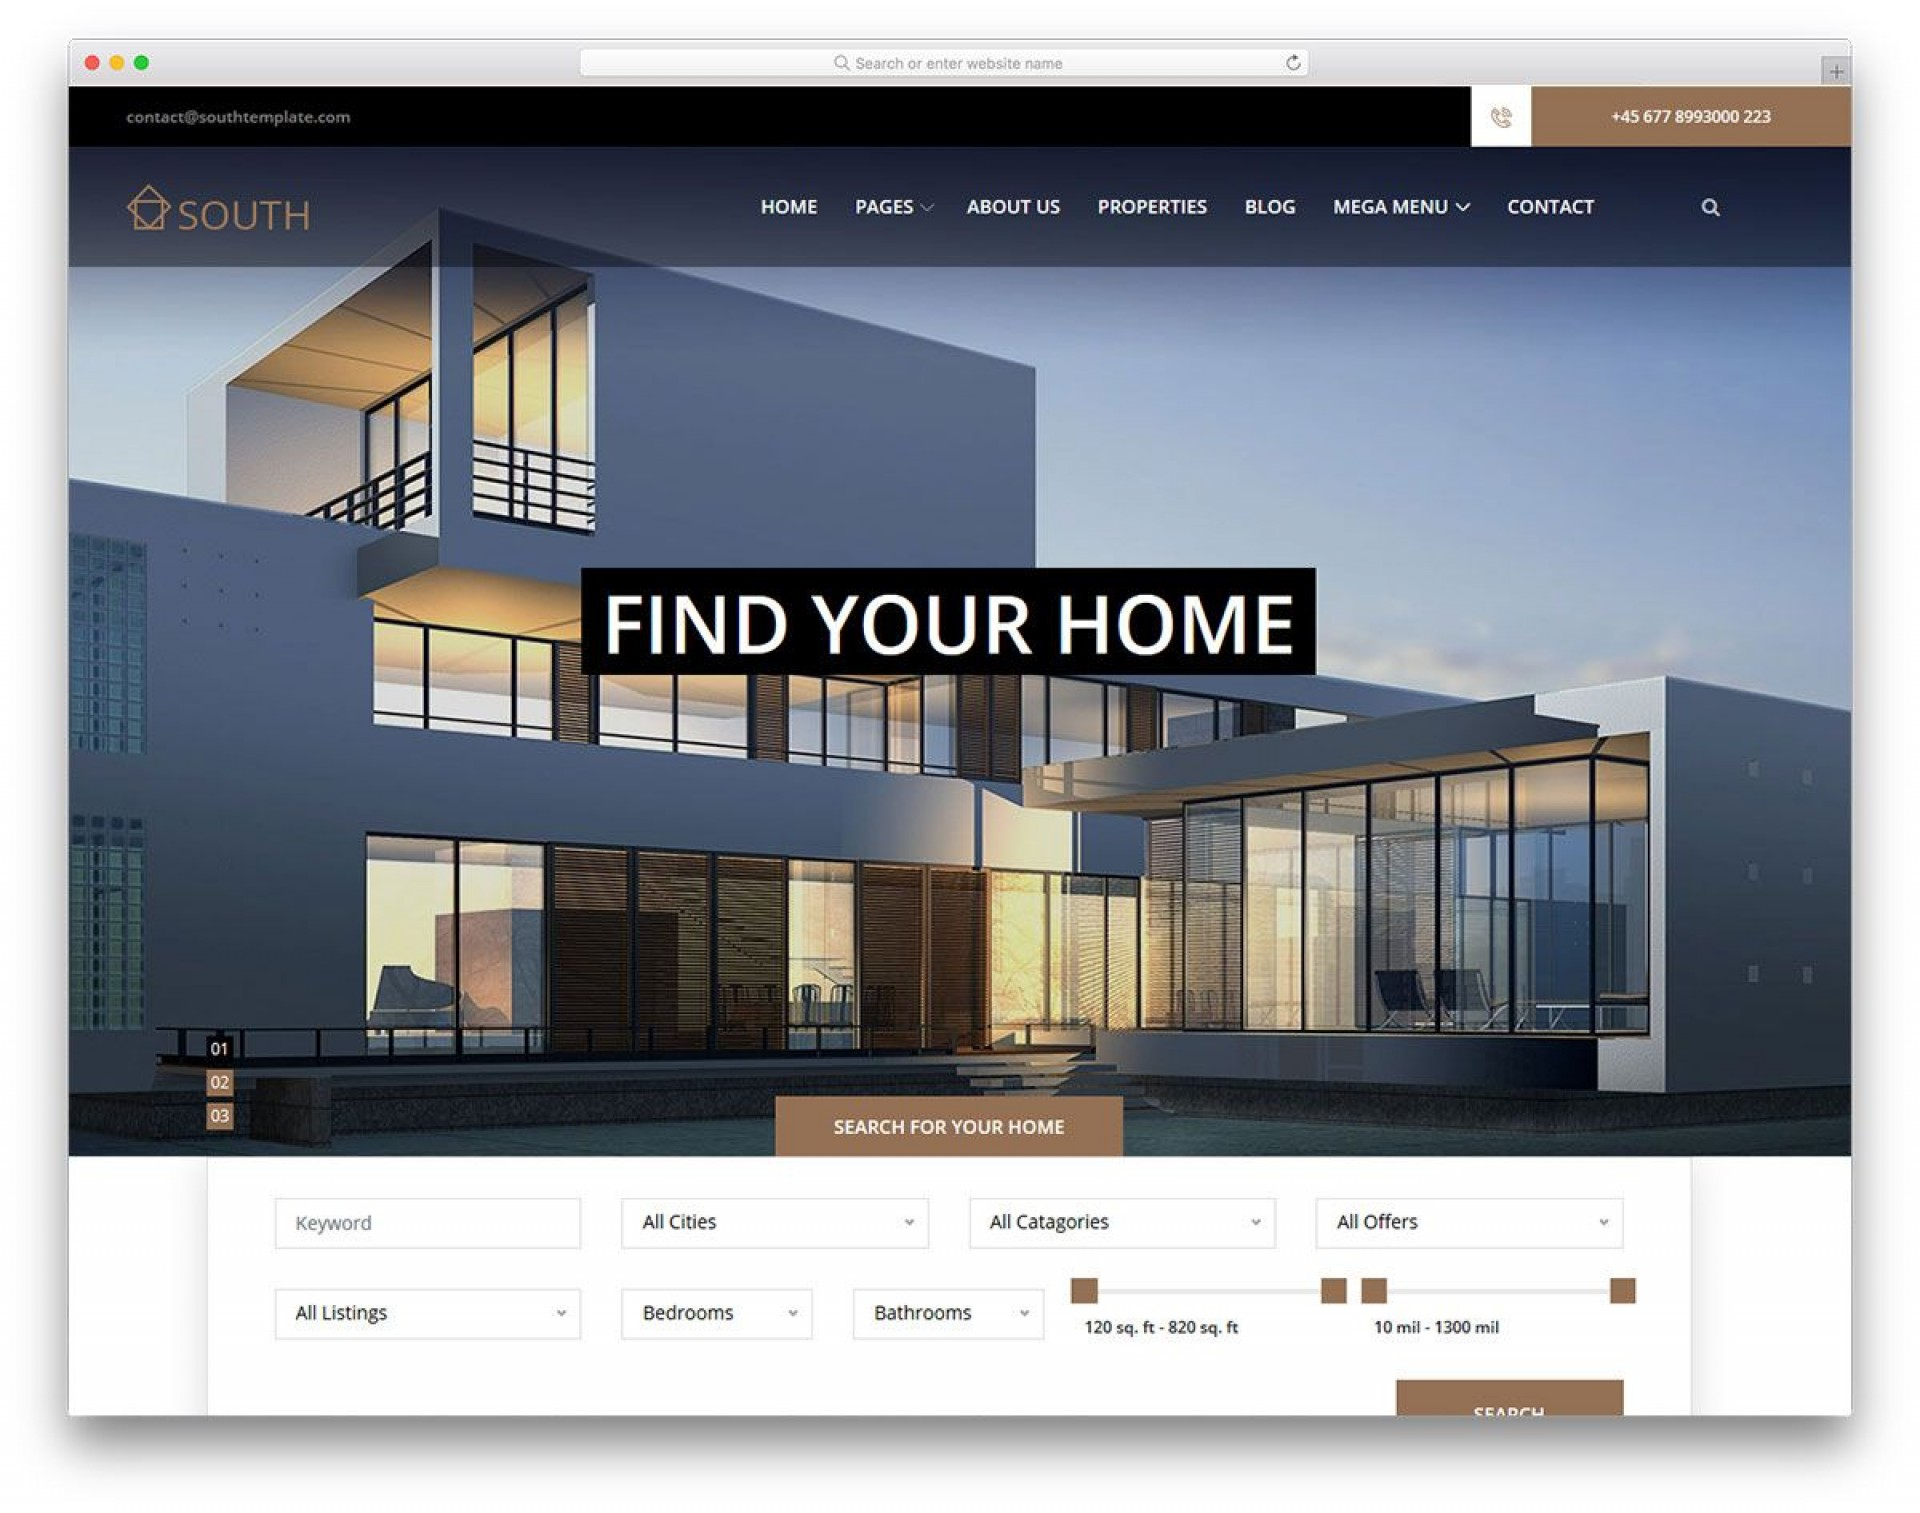 009 Stupendou Real Estate Agent Website Template Image  Templates Agency Responsive Free Download Company Web1920